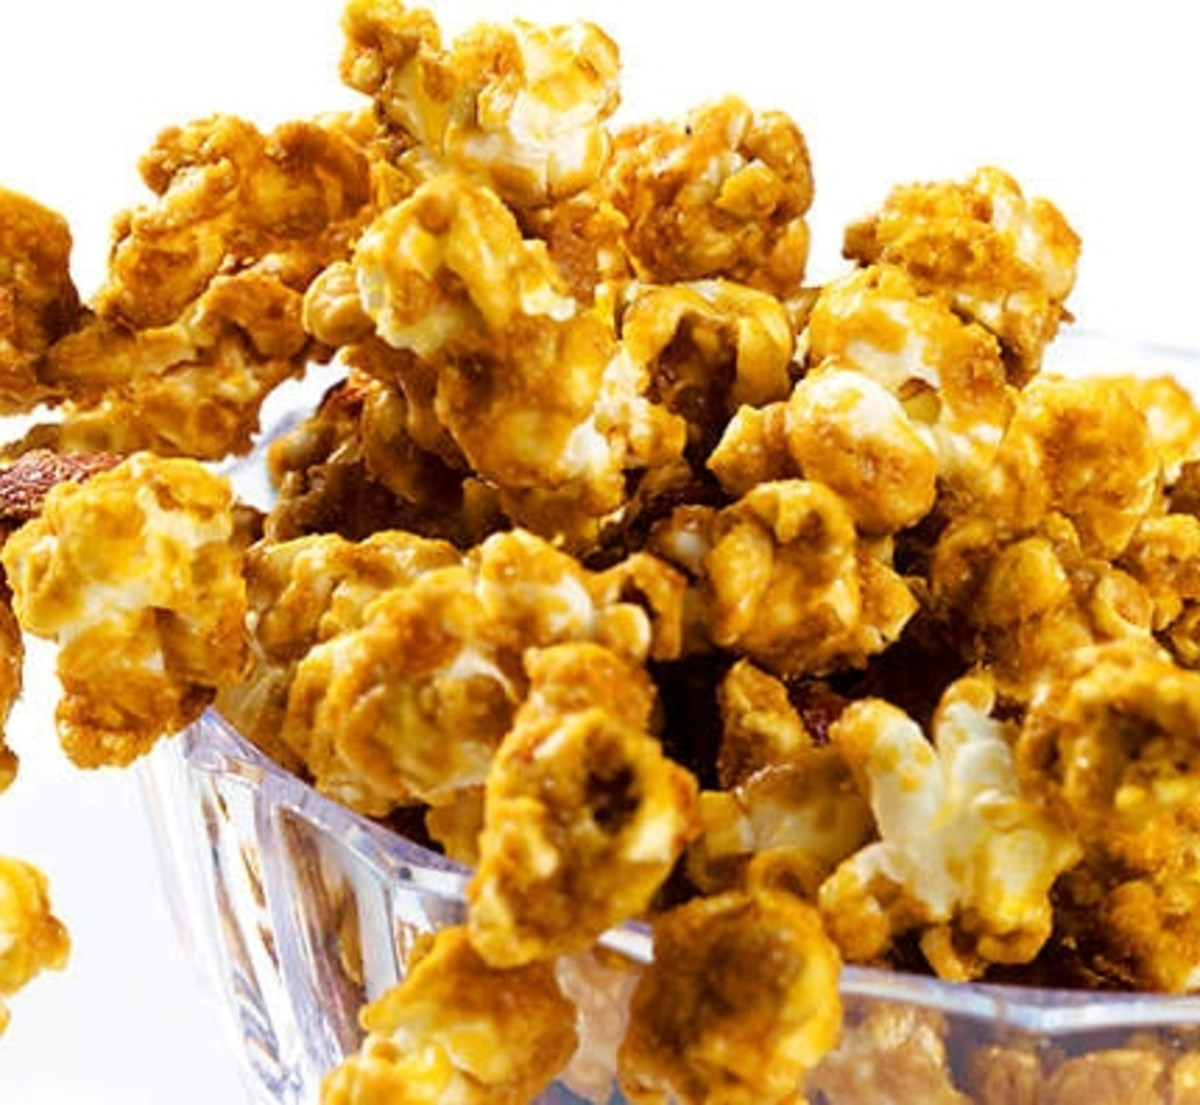 Sugar-free Caramel air popcorn